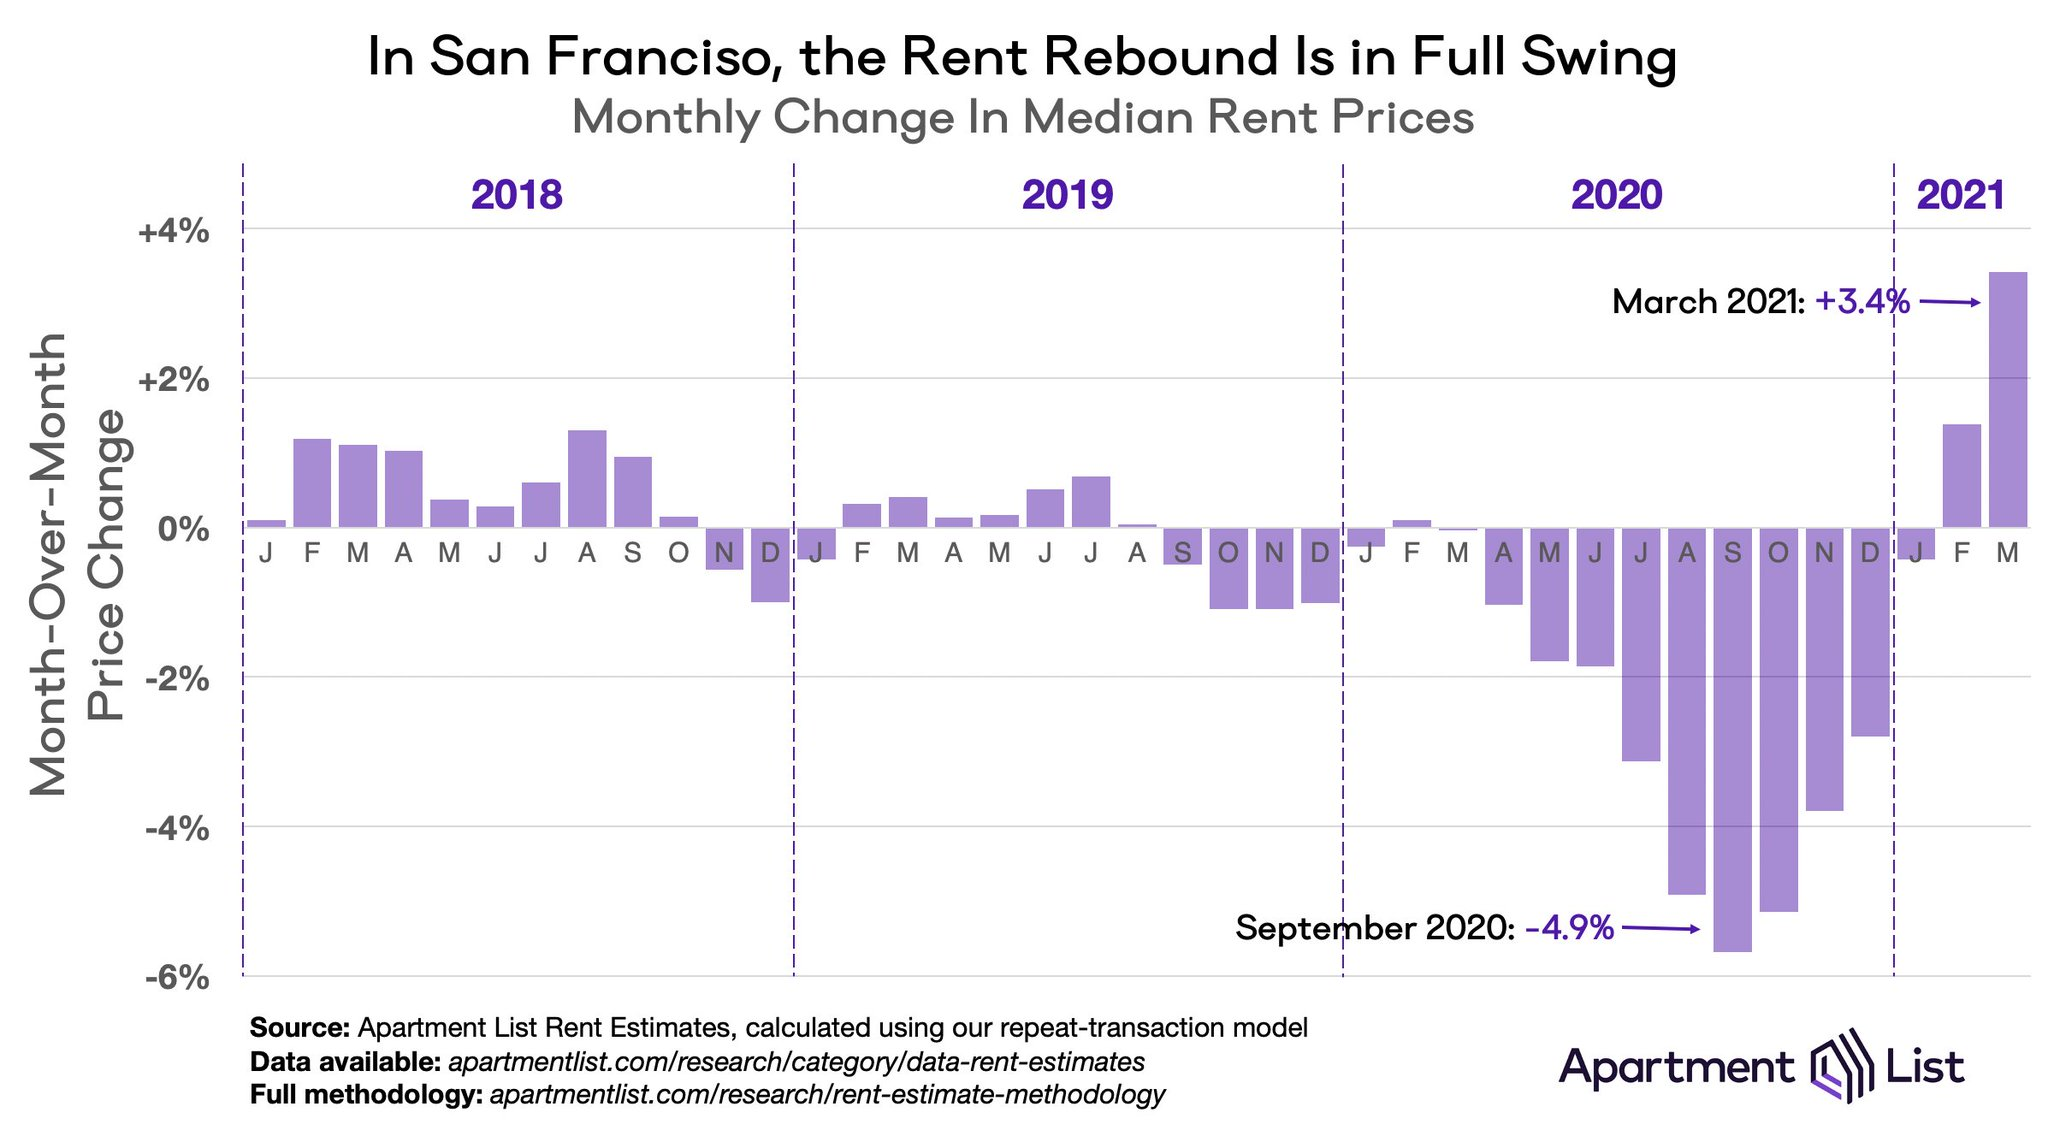 Rent rebound in San Francisco in 2021 and beyond